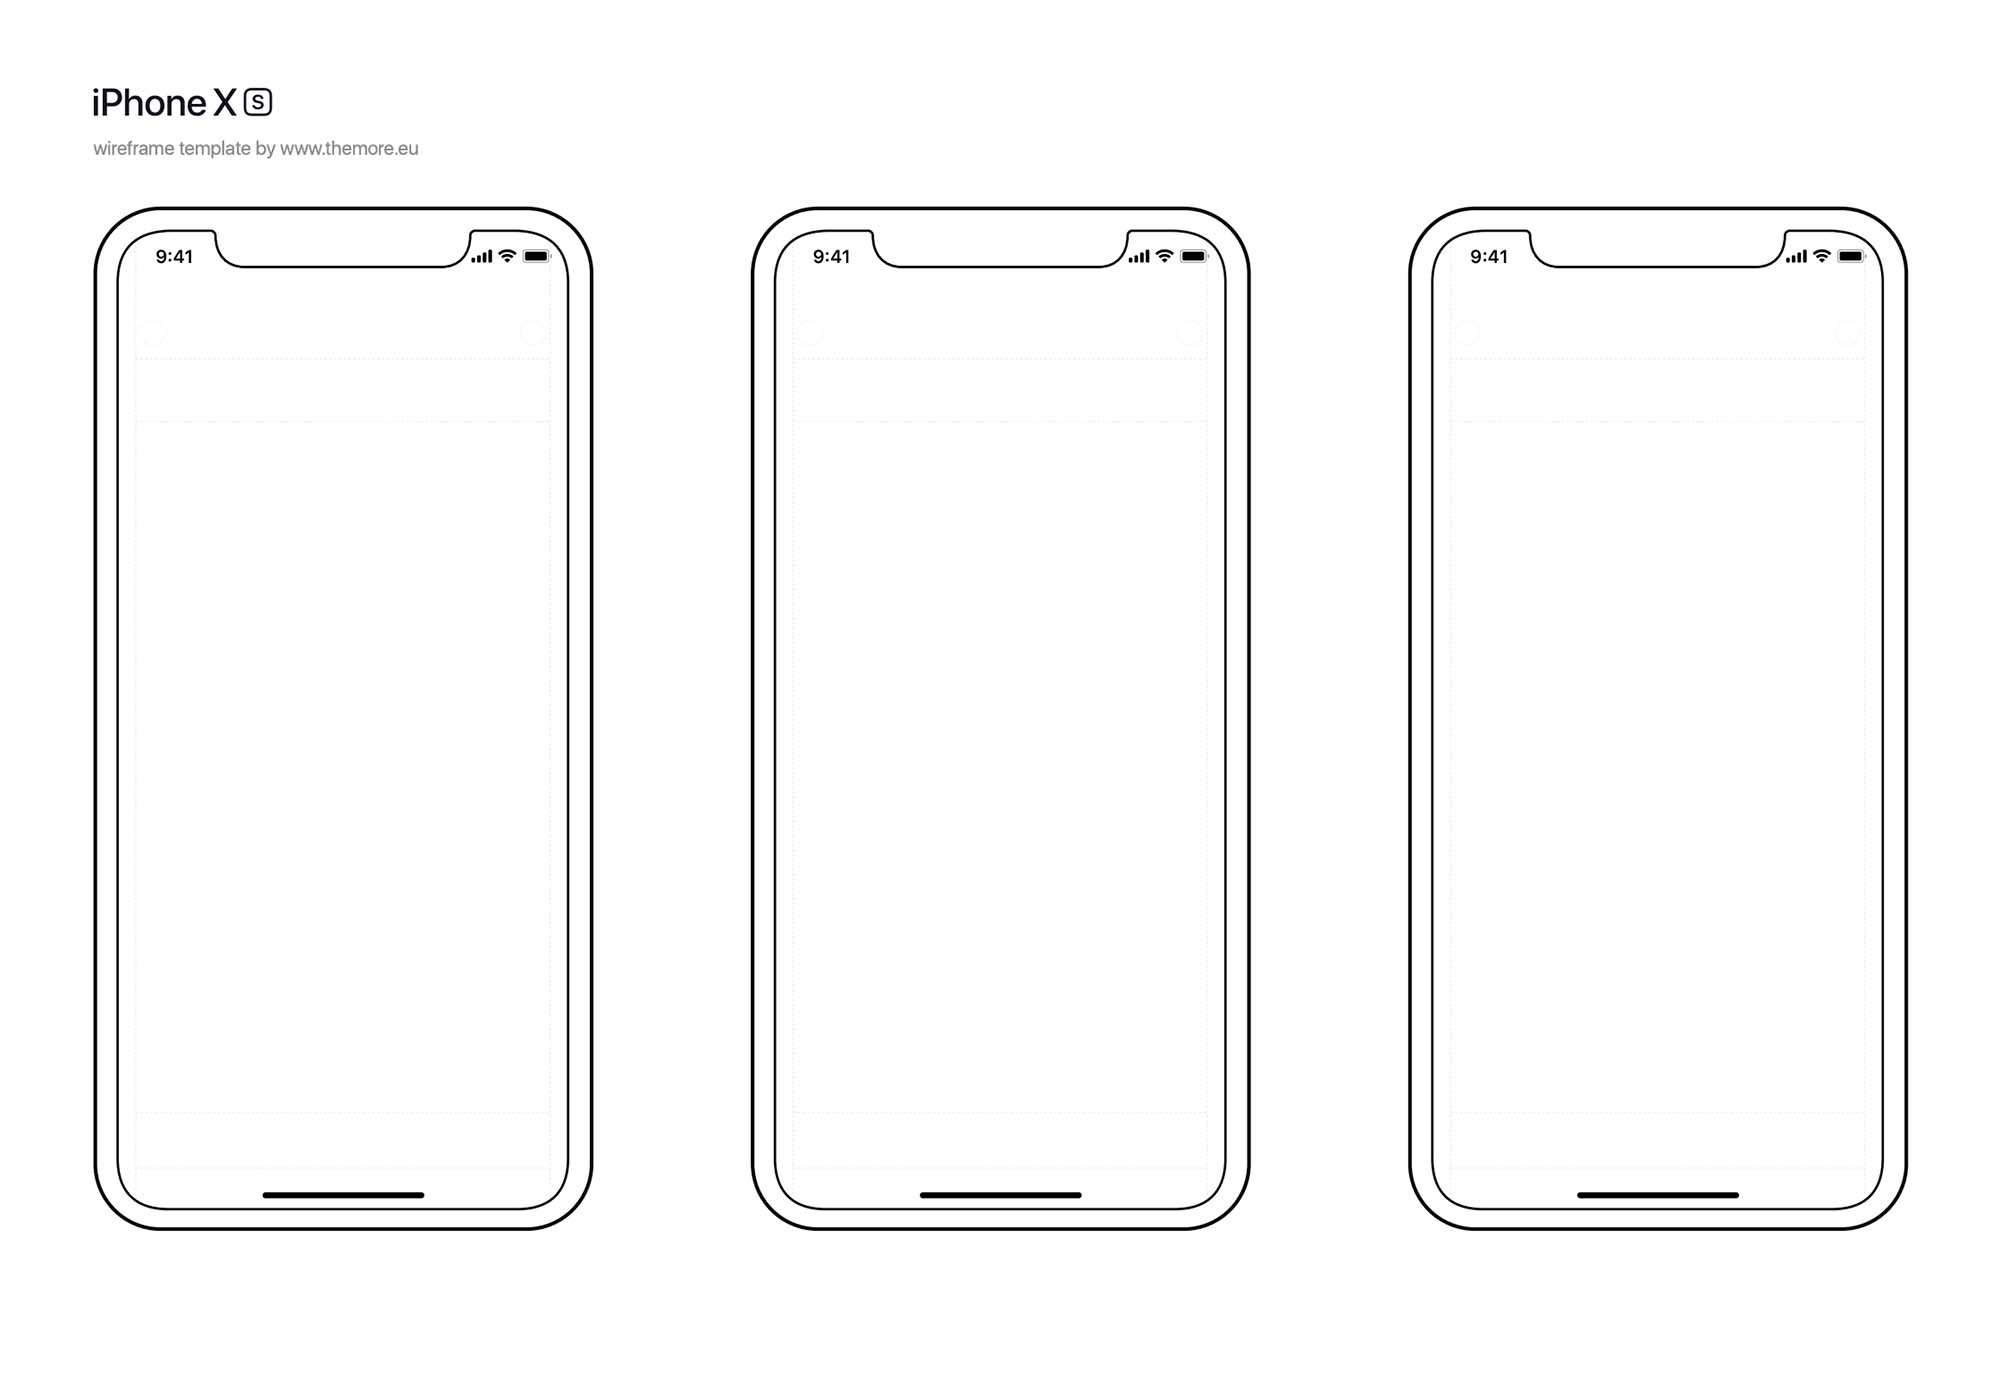 iPhone XS Wireframe Template 2